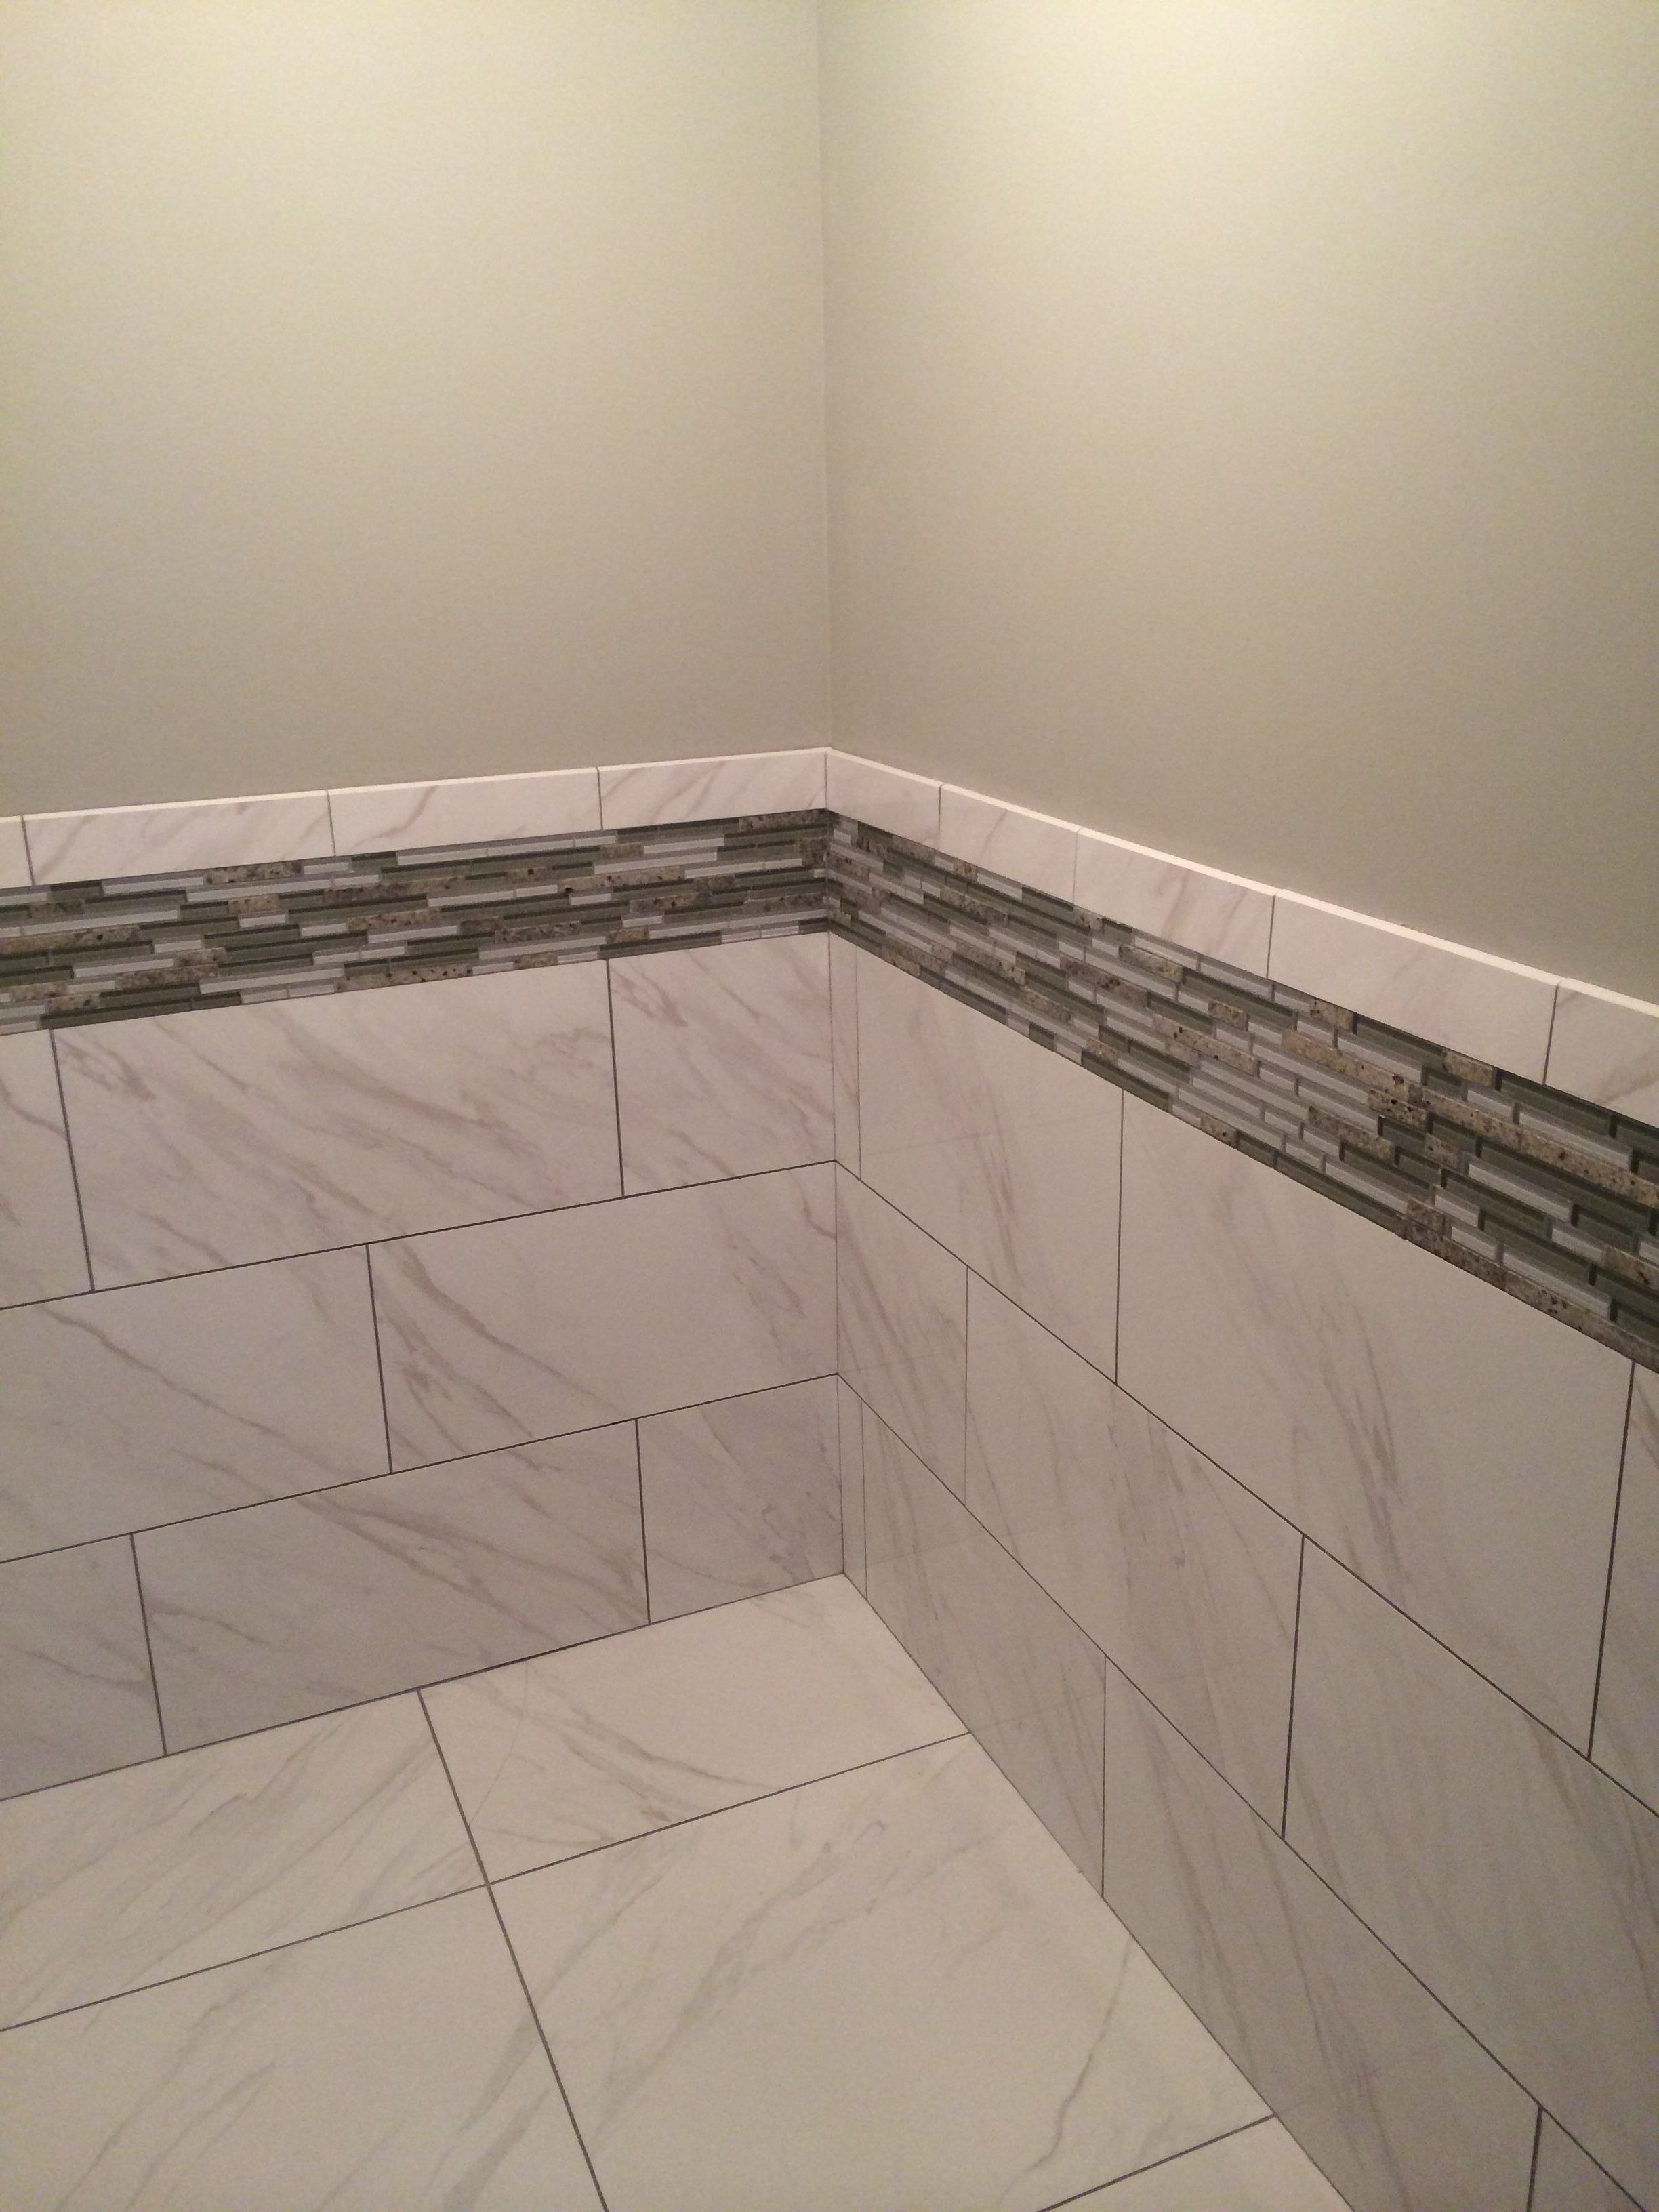 Daltile Florentine Carrara 12x24 Gloss On The Walls With